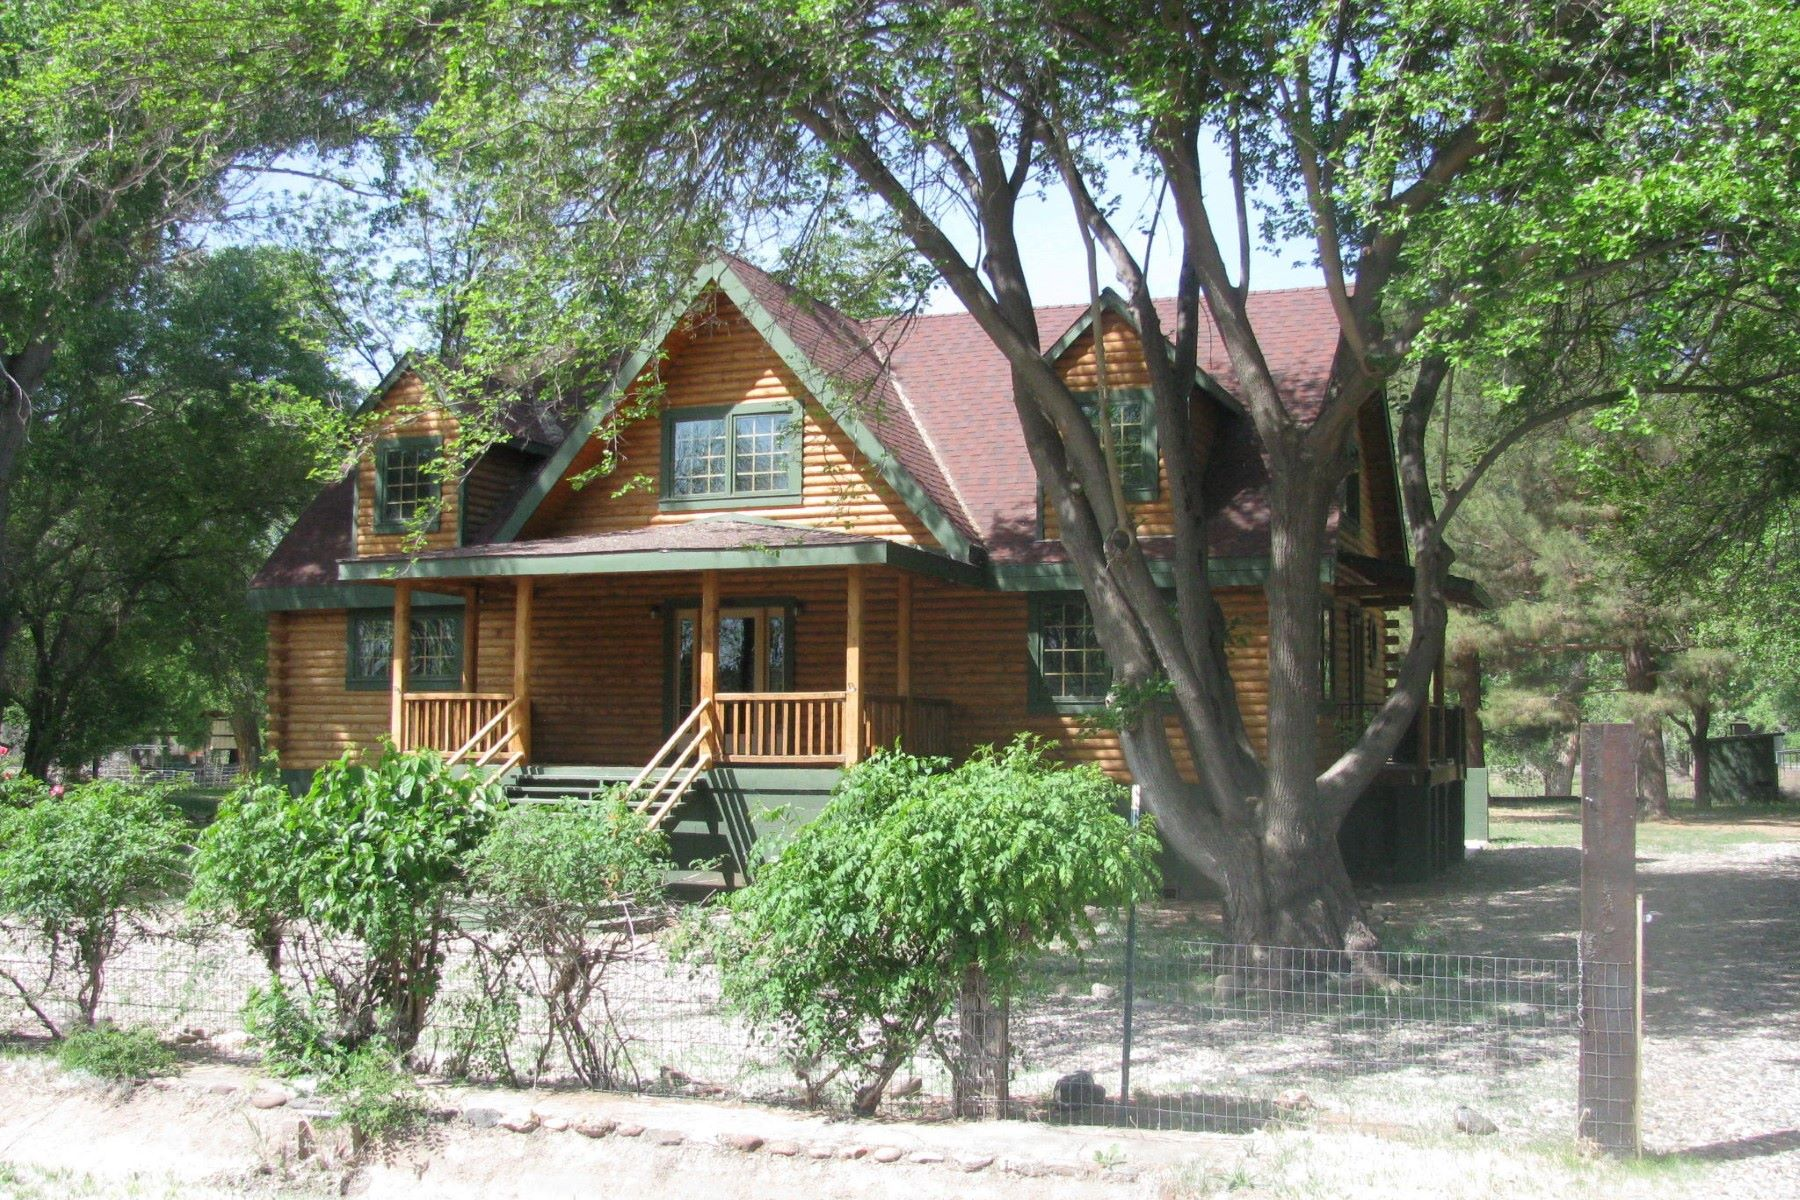 Single Family Home for Sale at Fabulous recently remodeled and tastefully decorated log cabin 1576 N Rustler Tr Camp Verde, Arizona, 86322 United States